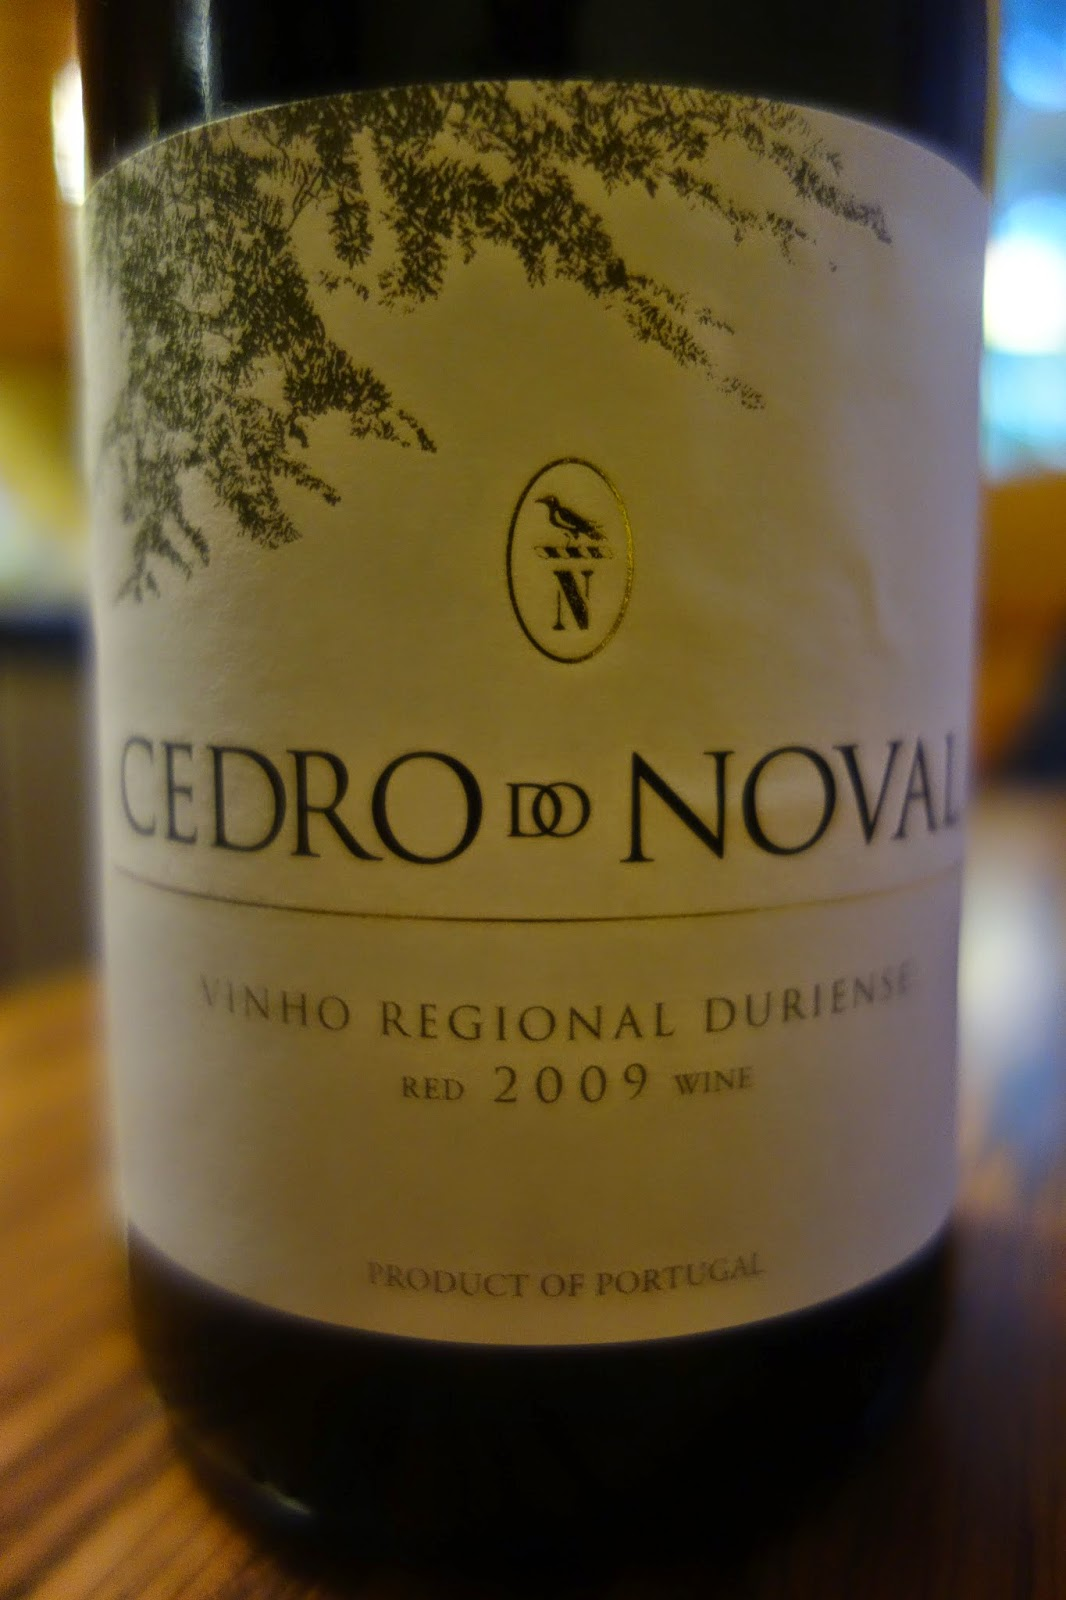 cedro do noval 2009: a touch of the rhône in portugal